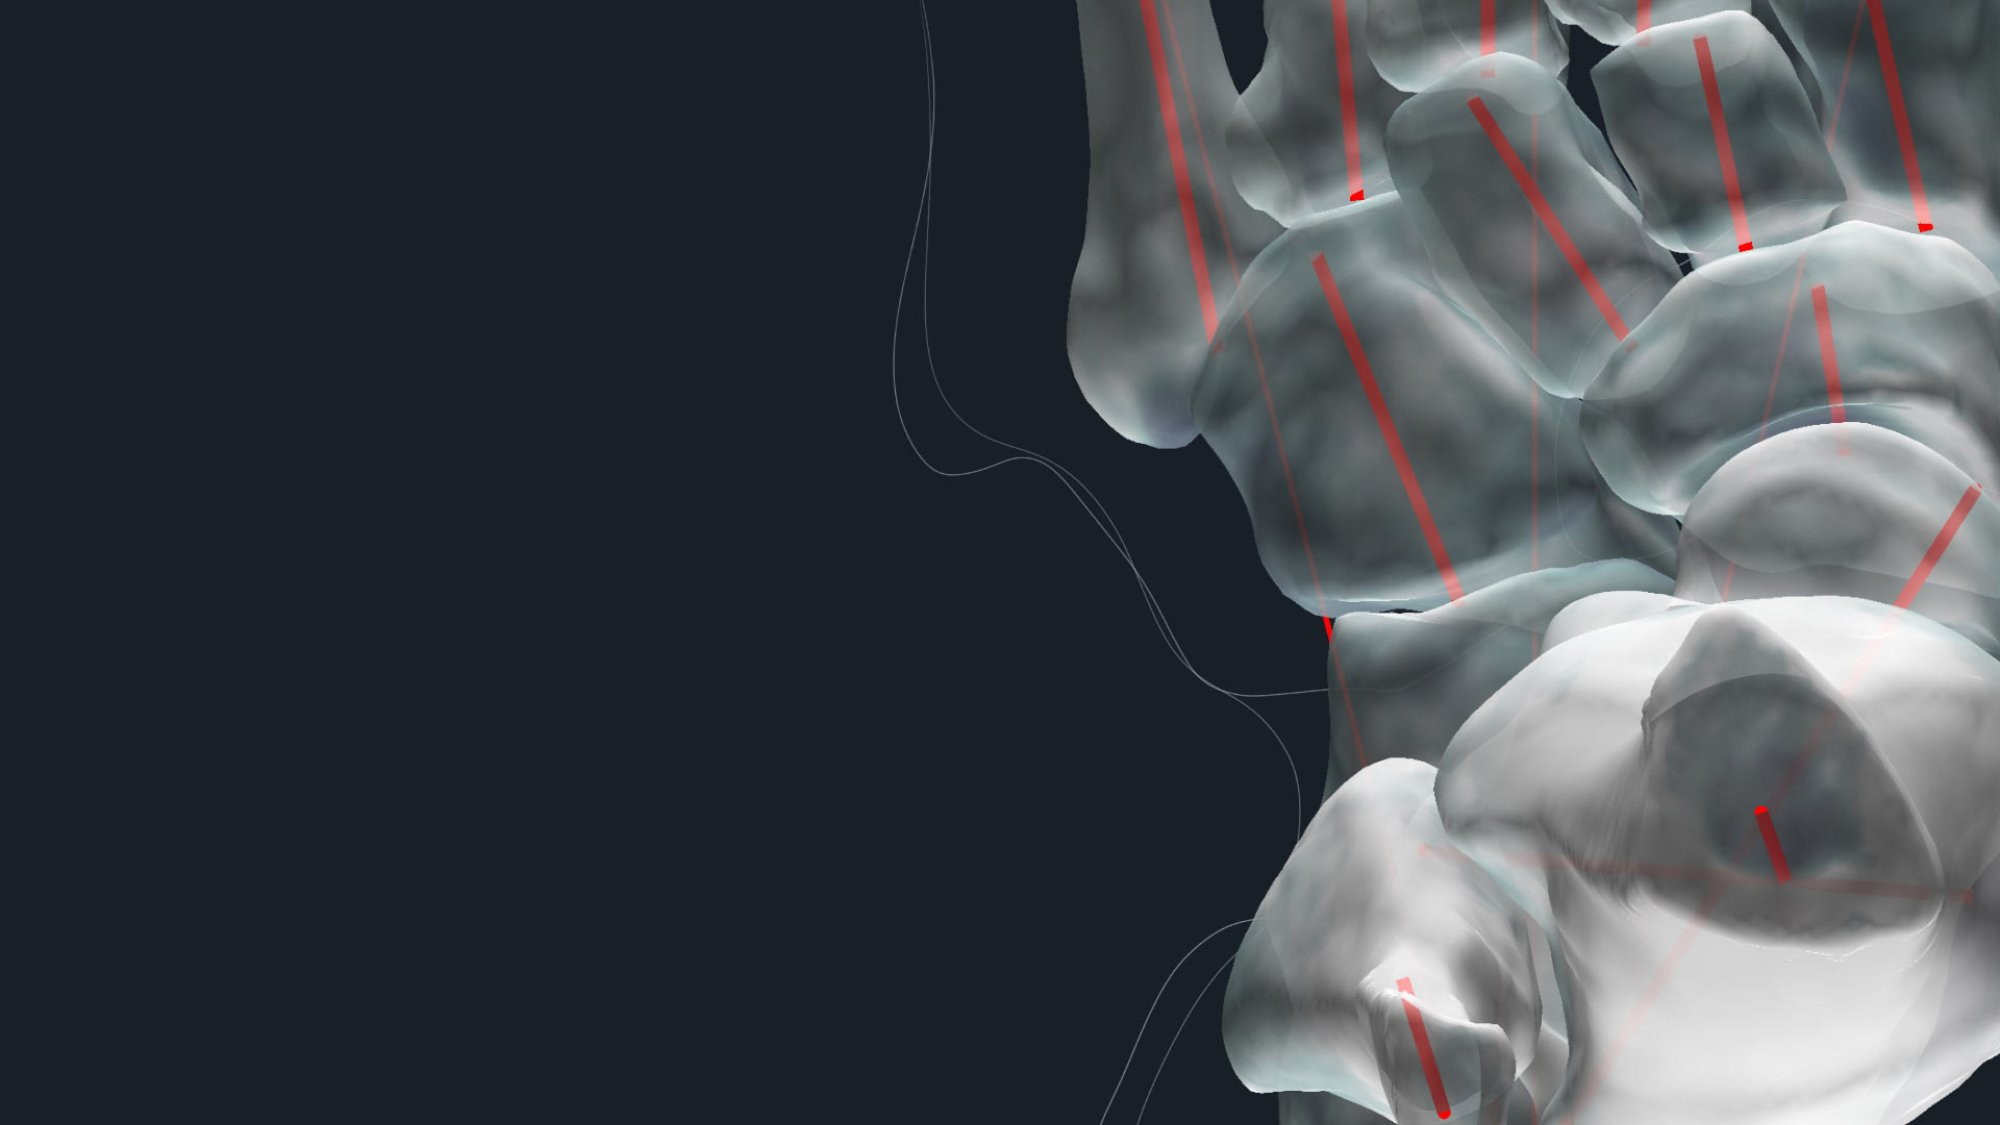 Disior has developed software to analyse and model bone fractures and soft tissue.